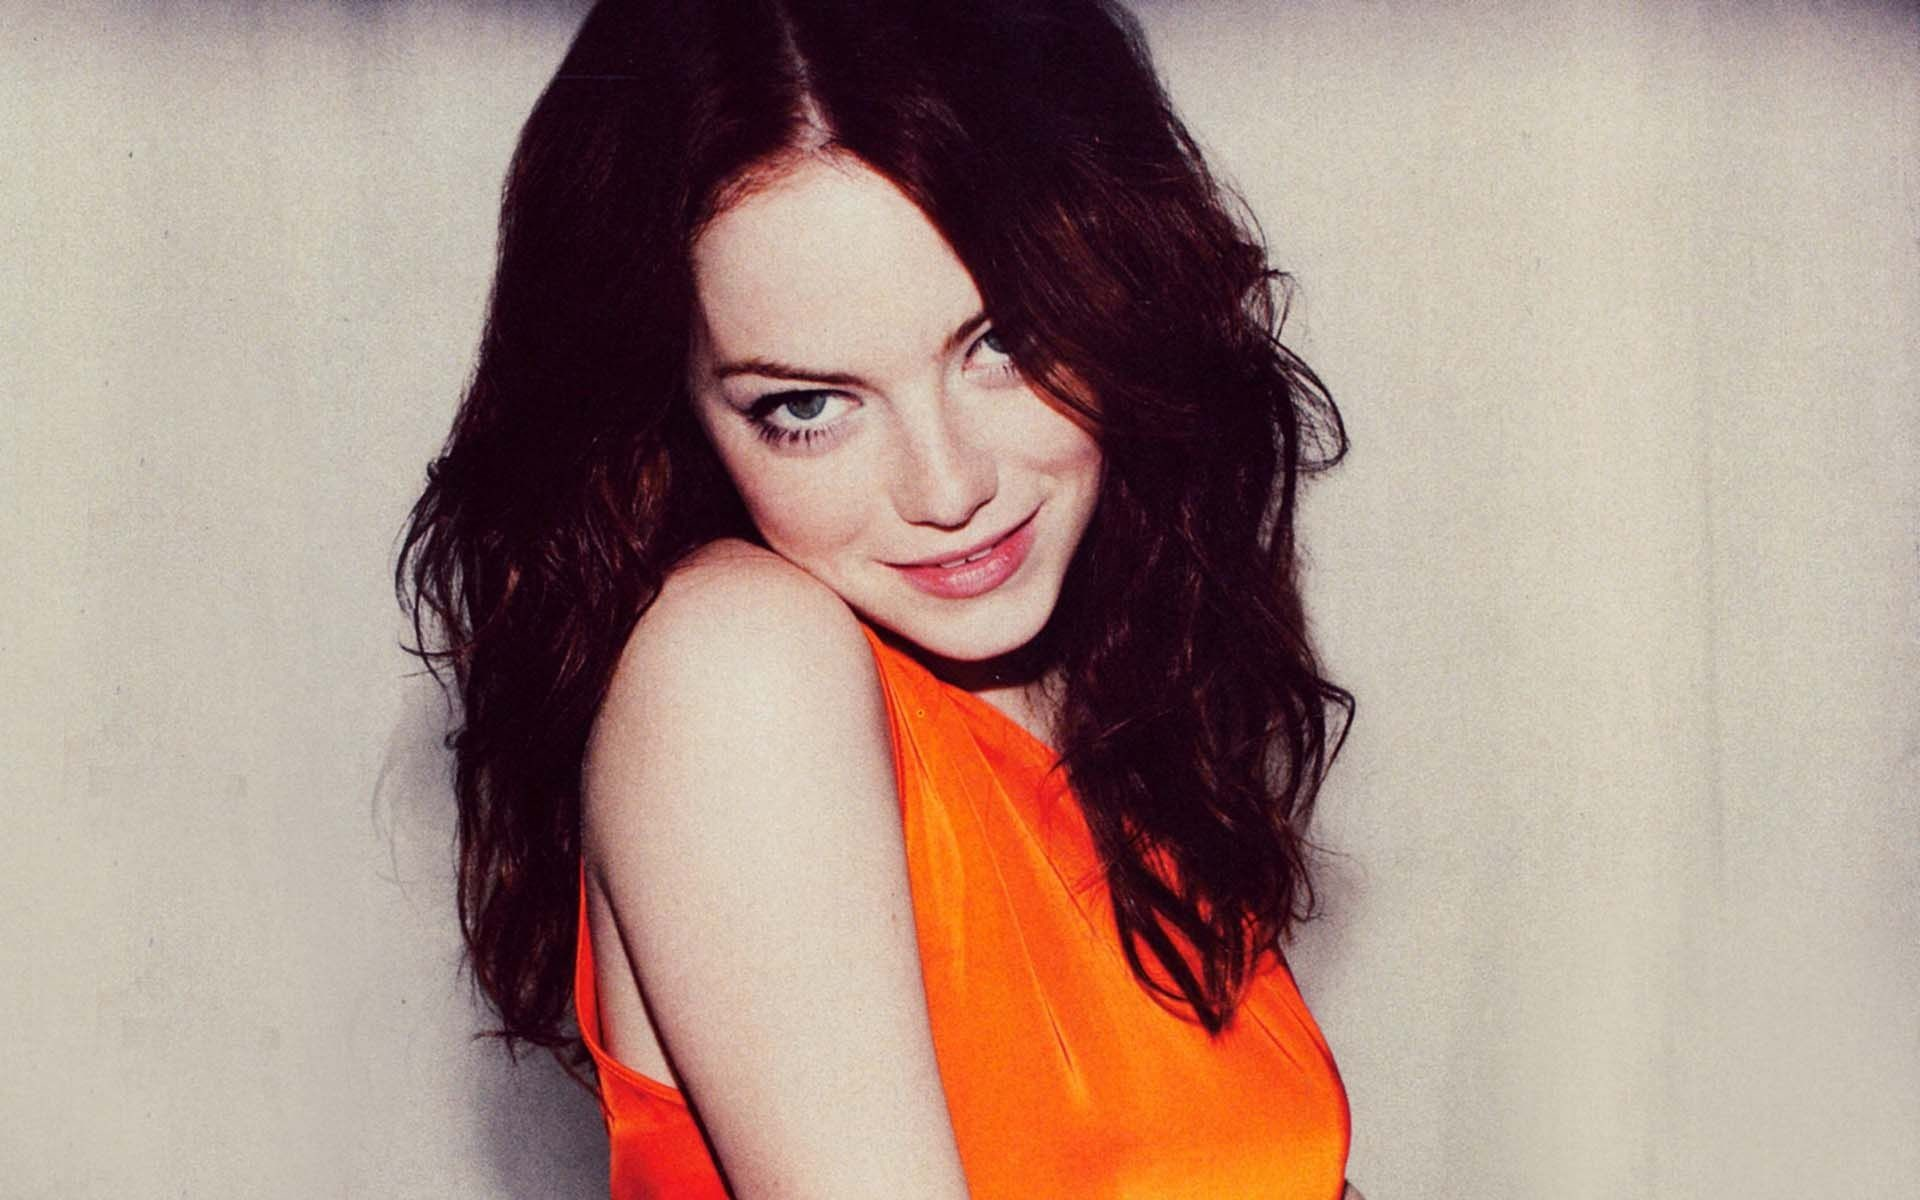 Emma Stone HD Images Gallery